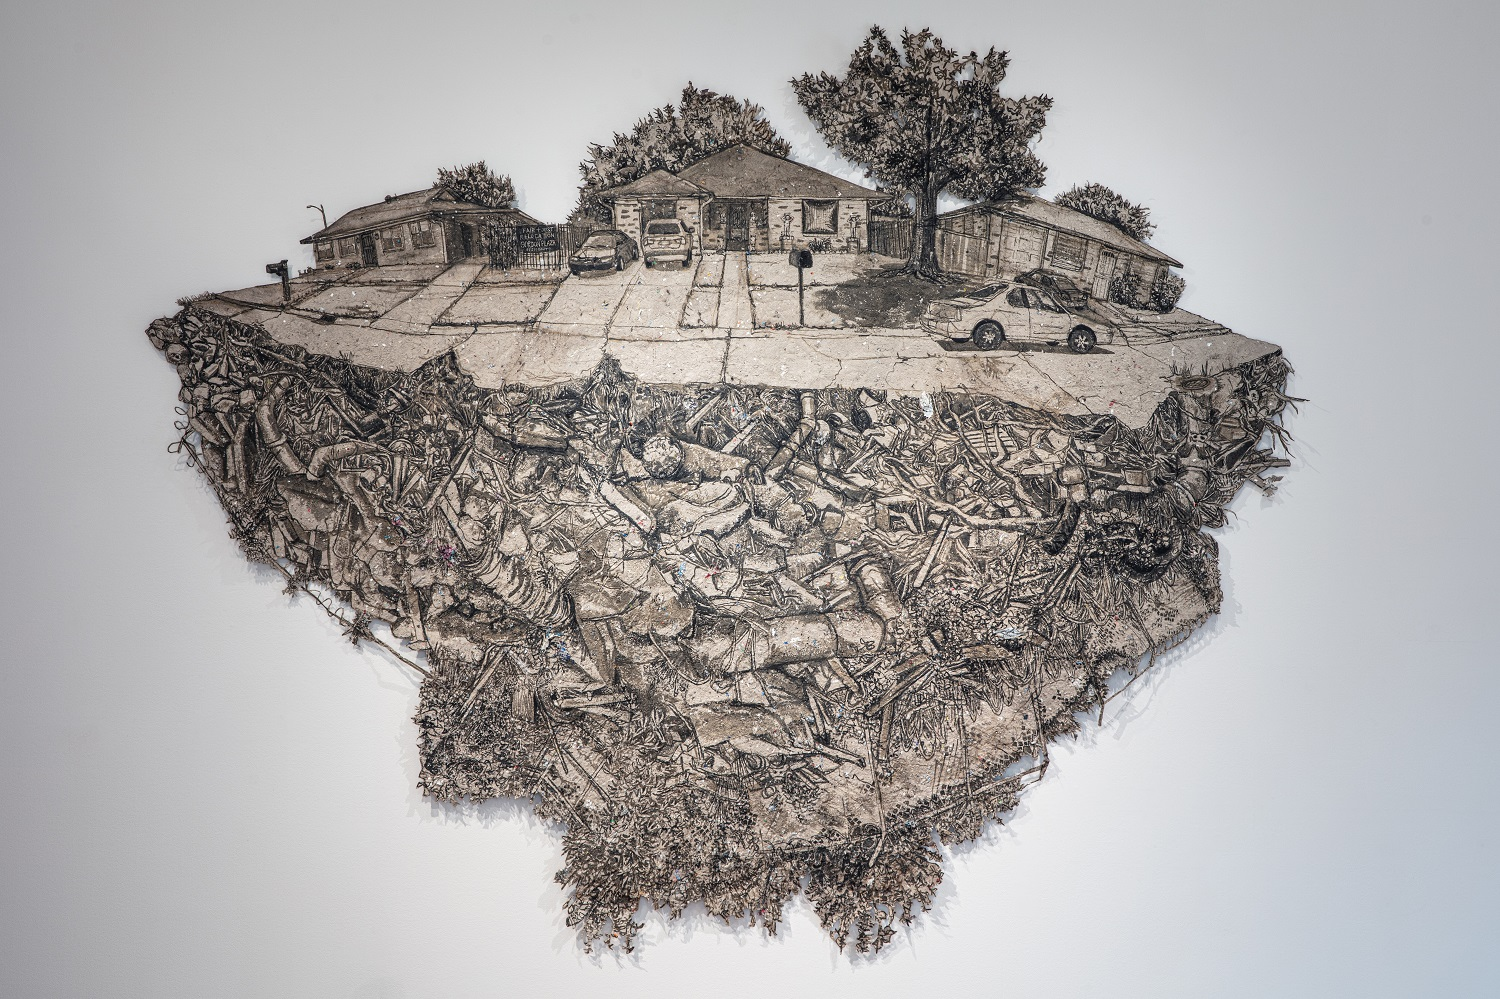 Images of the Anthropocene